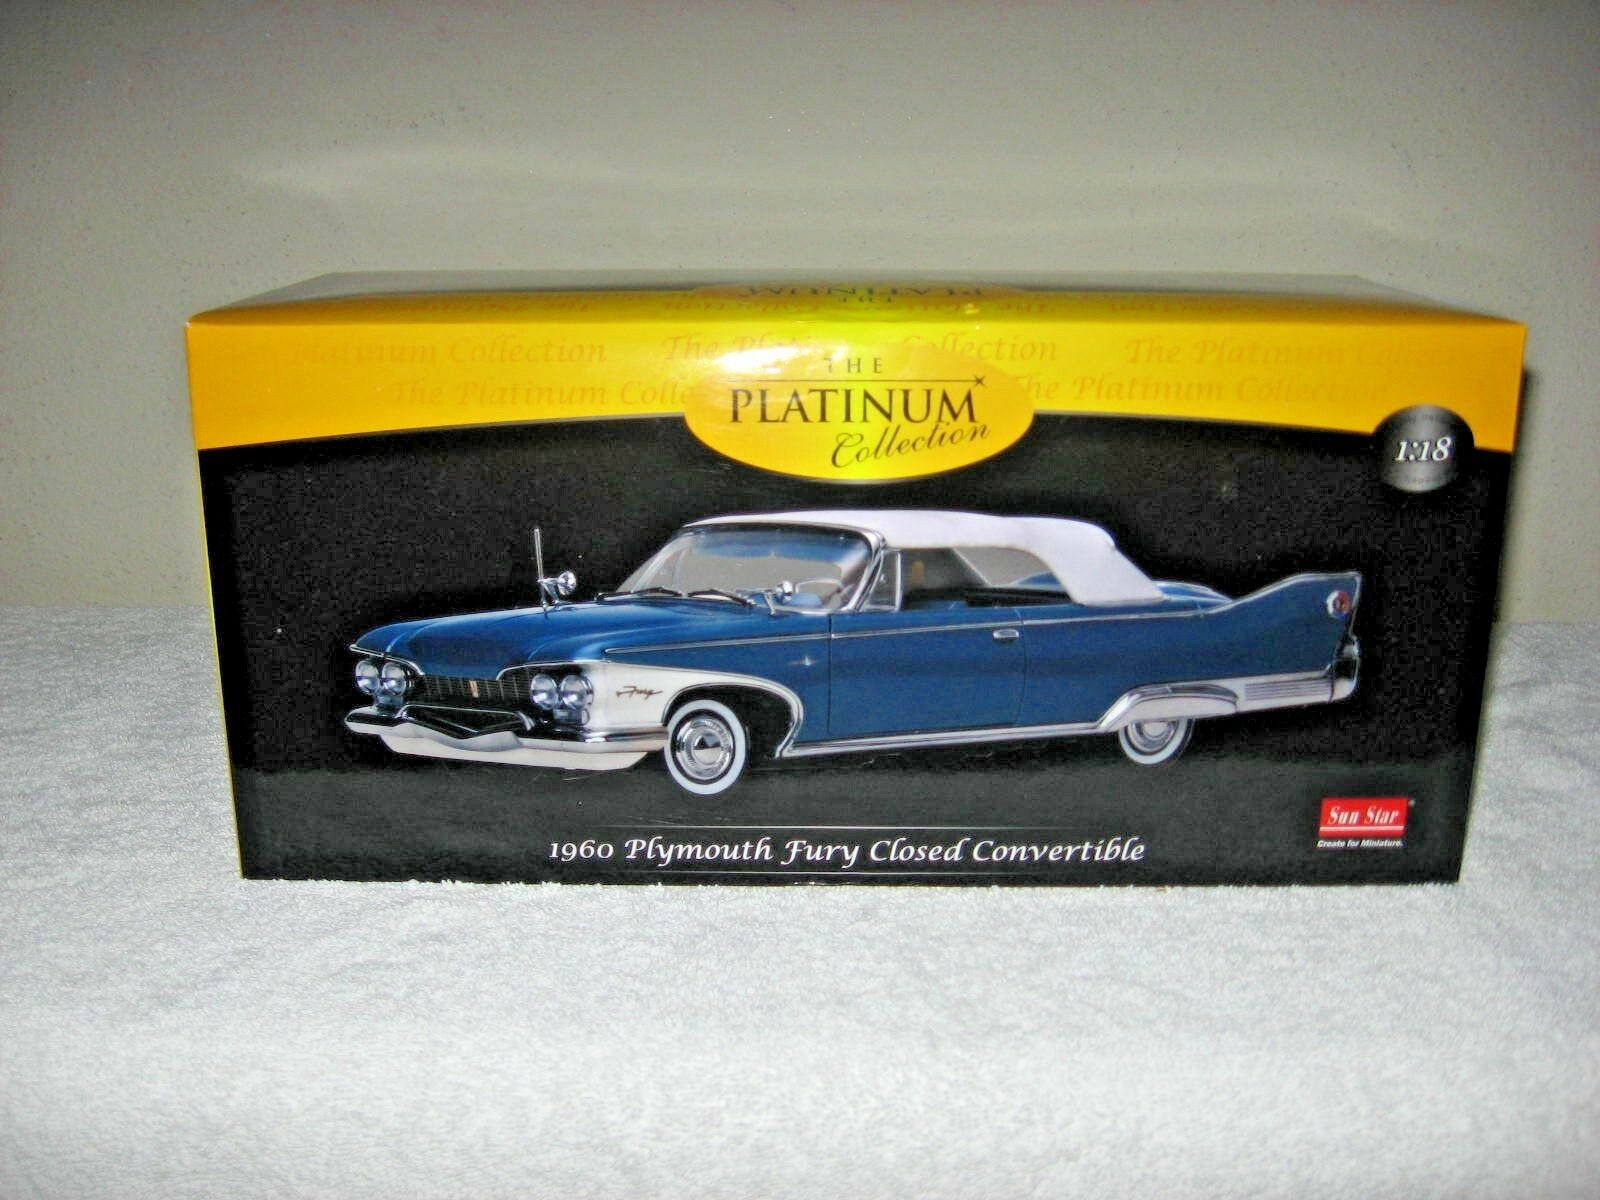 1960 PLYMOUTH FURY CLOSED CONverdeIBLE blu 1 18 HI DETAIL PLATINUM SUN STAR